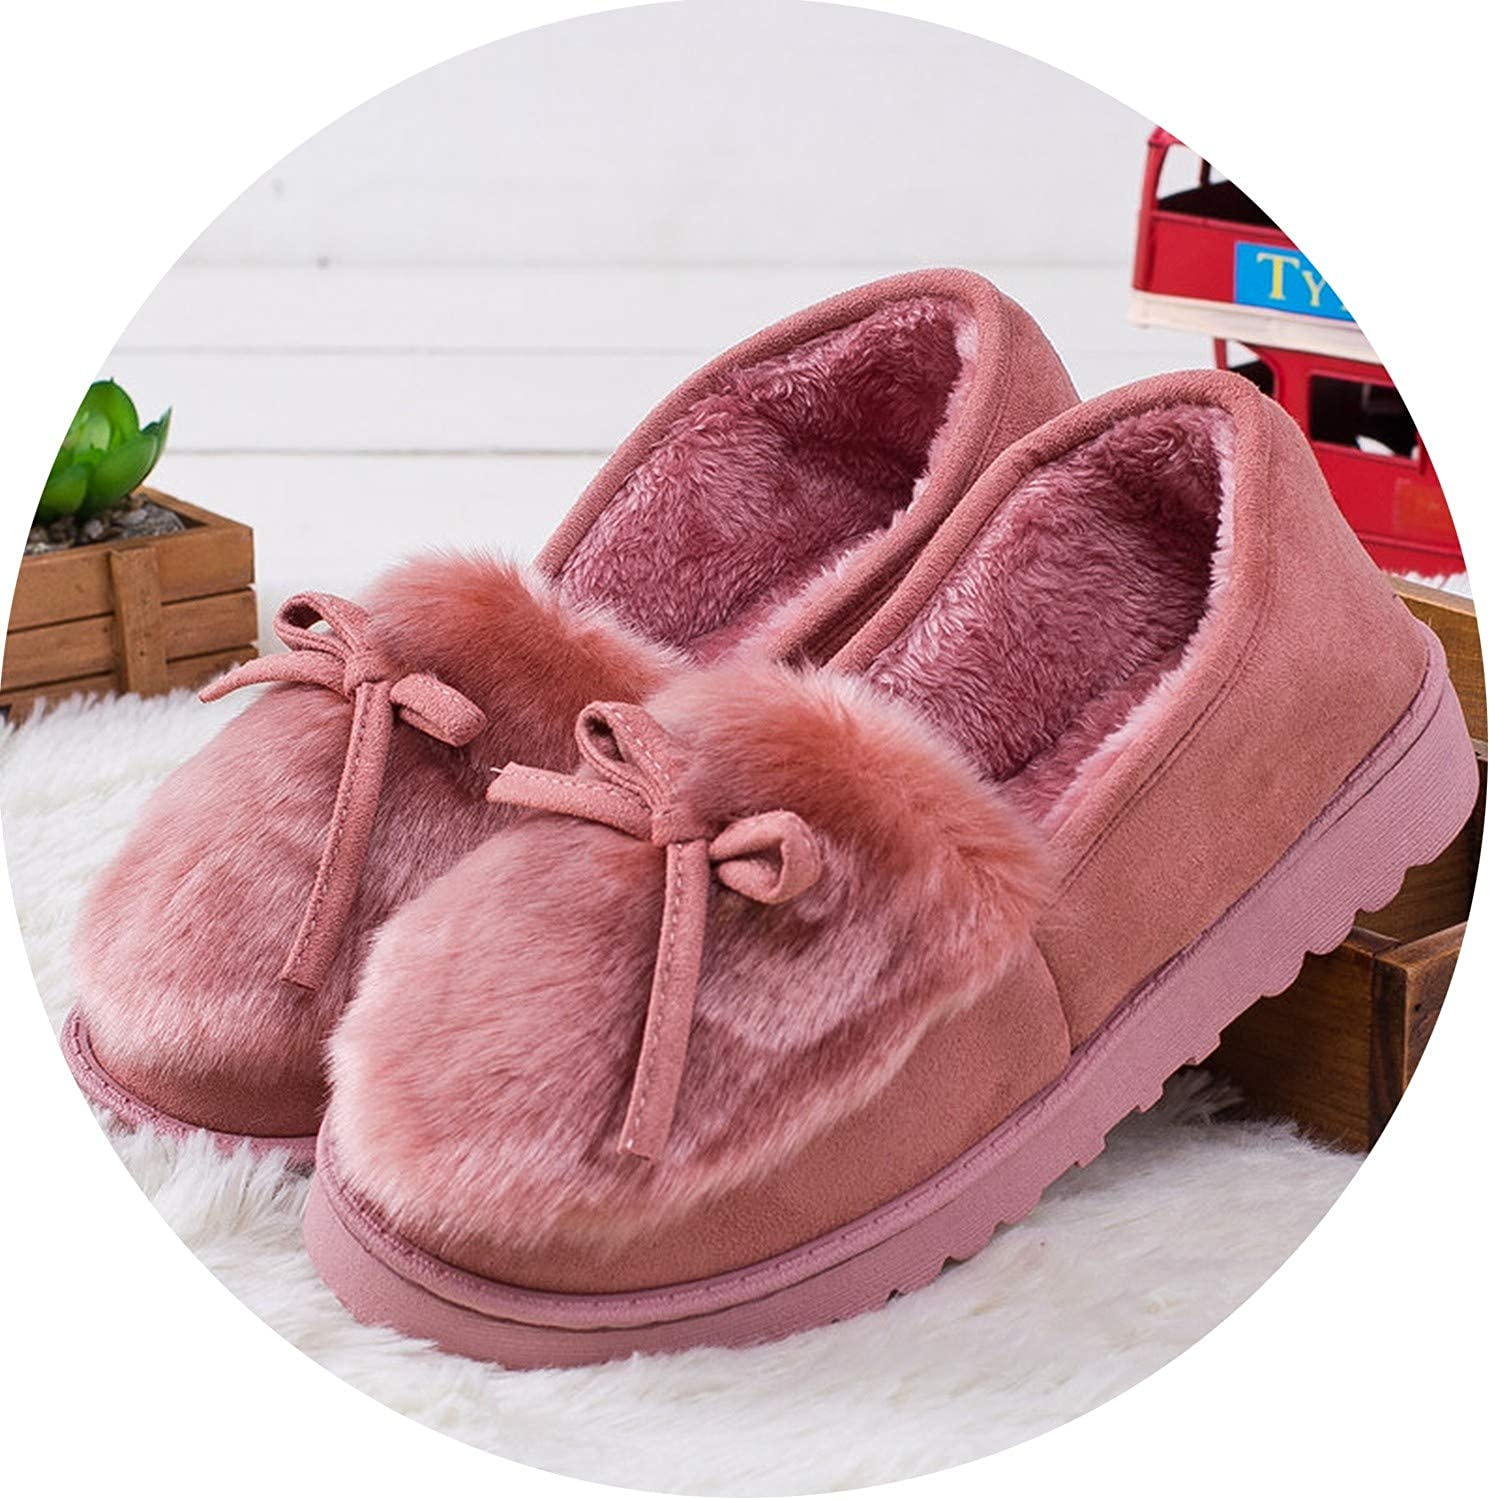 Winter Platform shoes Outdoor Home SlippersFur Slides House Sandals Fuzzy Slippers Loafers Bow